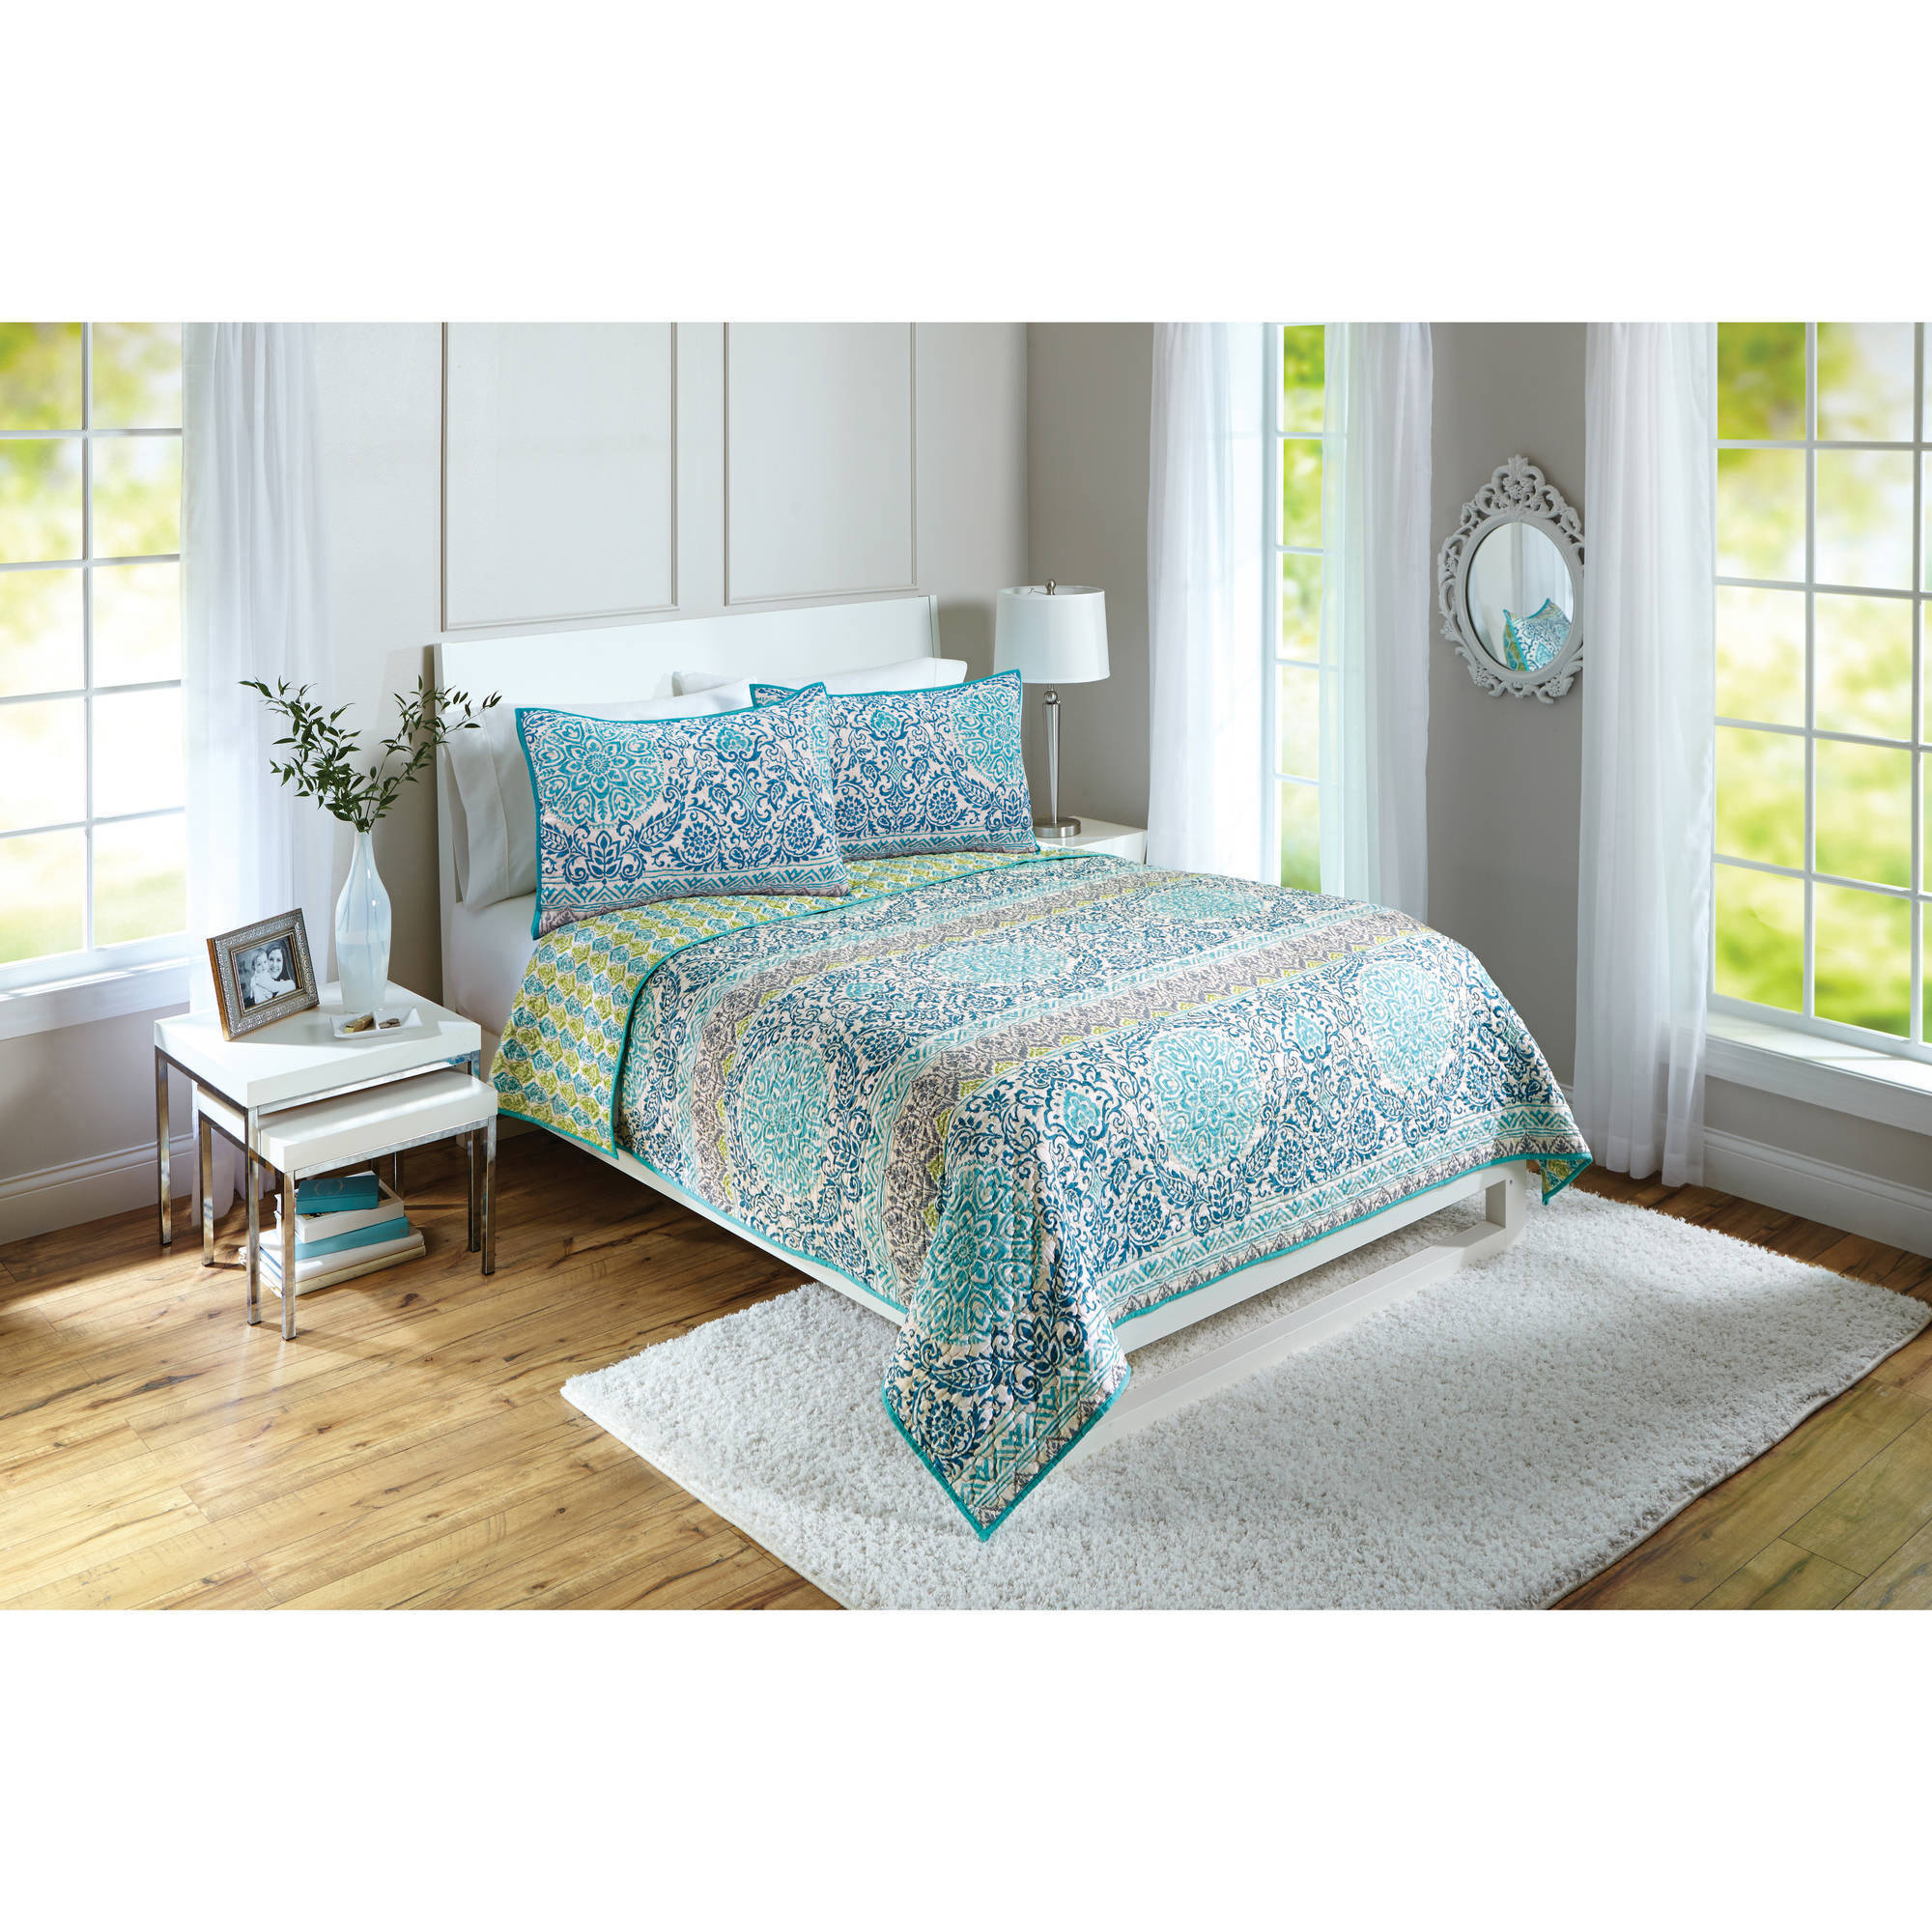 Better homes and gardens quilt collection watercolor Better homes and gardens gardener